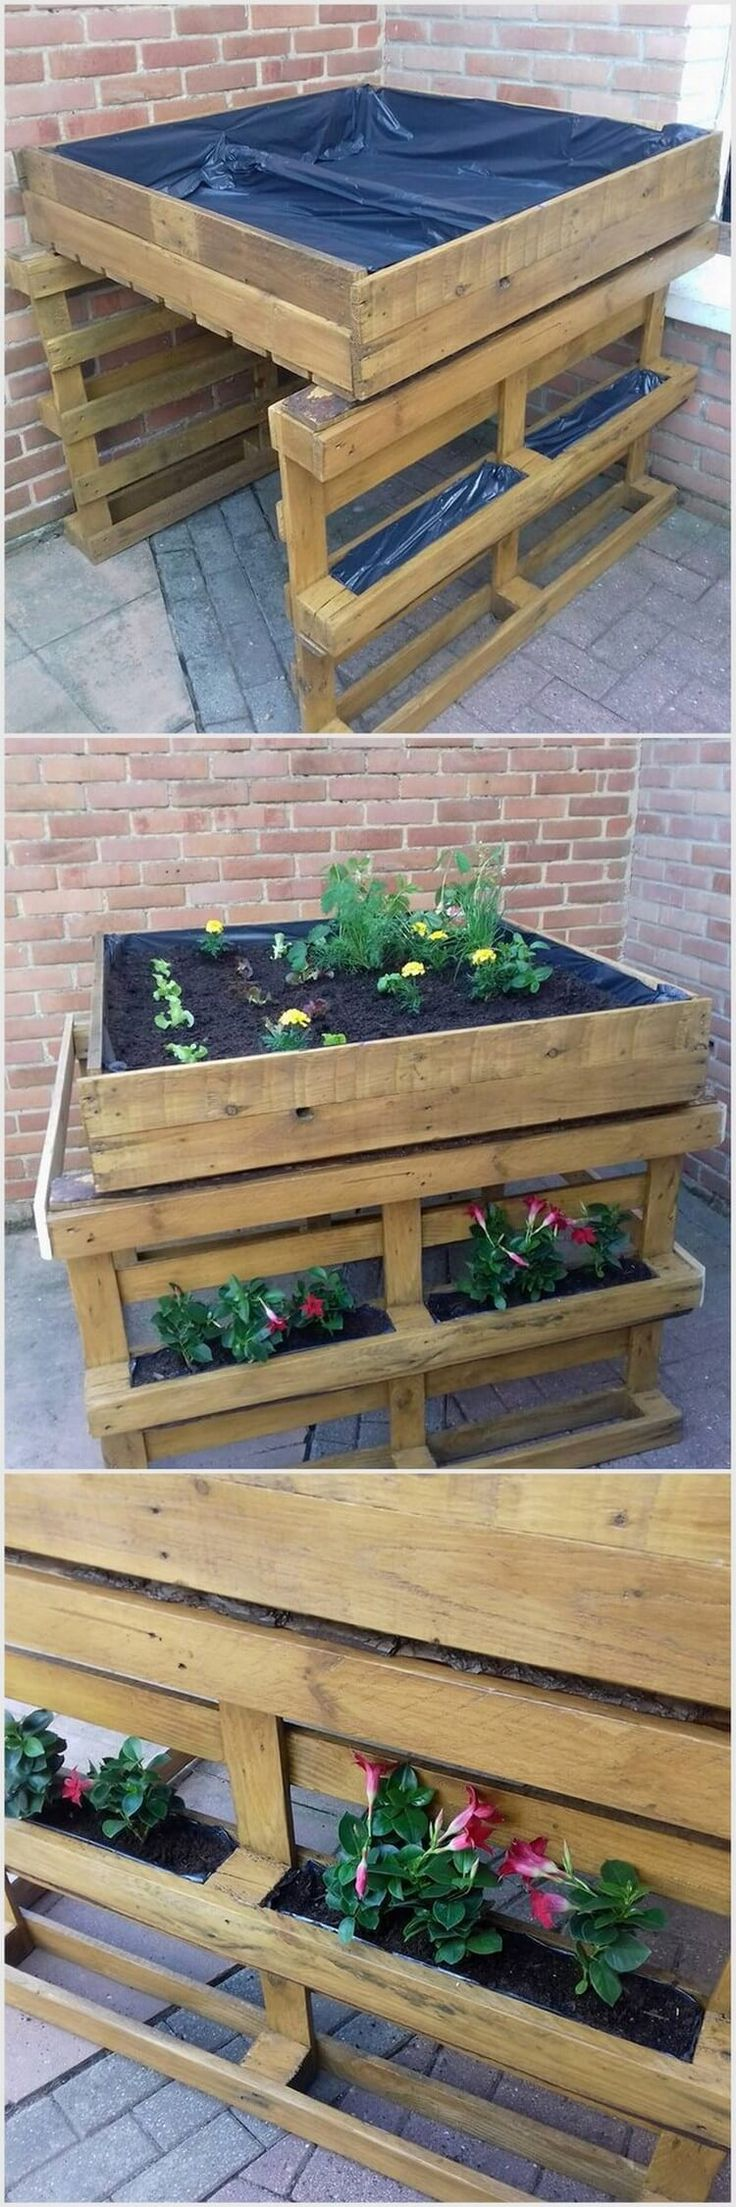 80 easy wooden pallet ideas for this summer